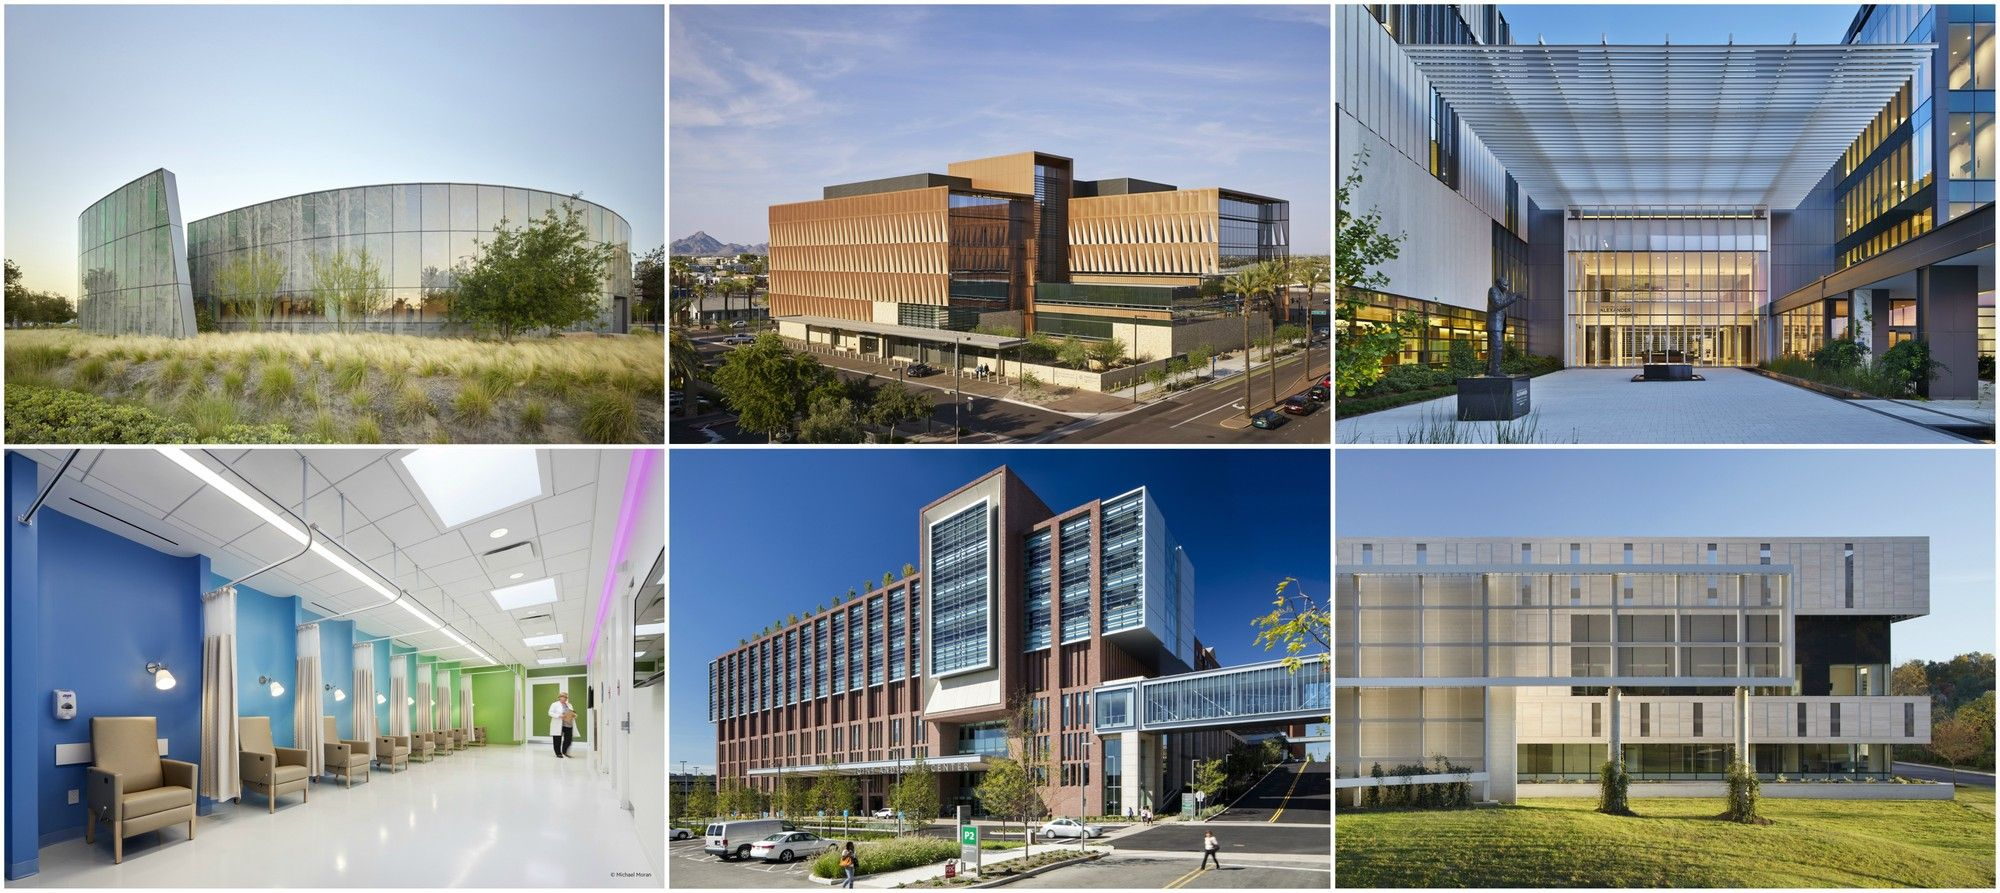 Health care center architecture projects